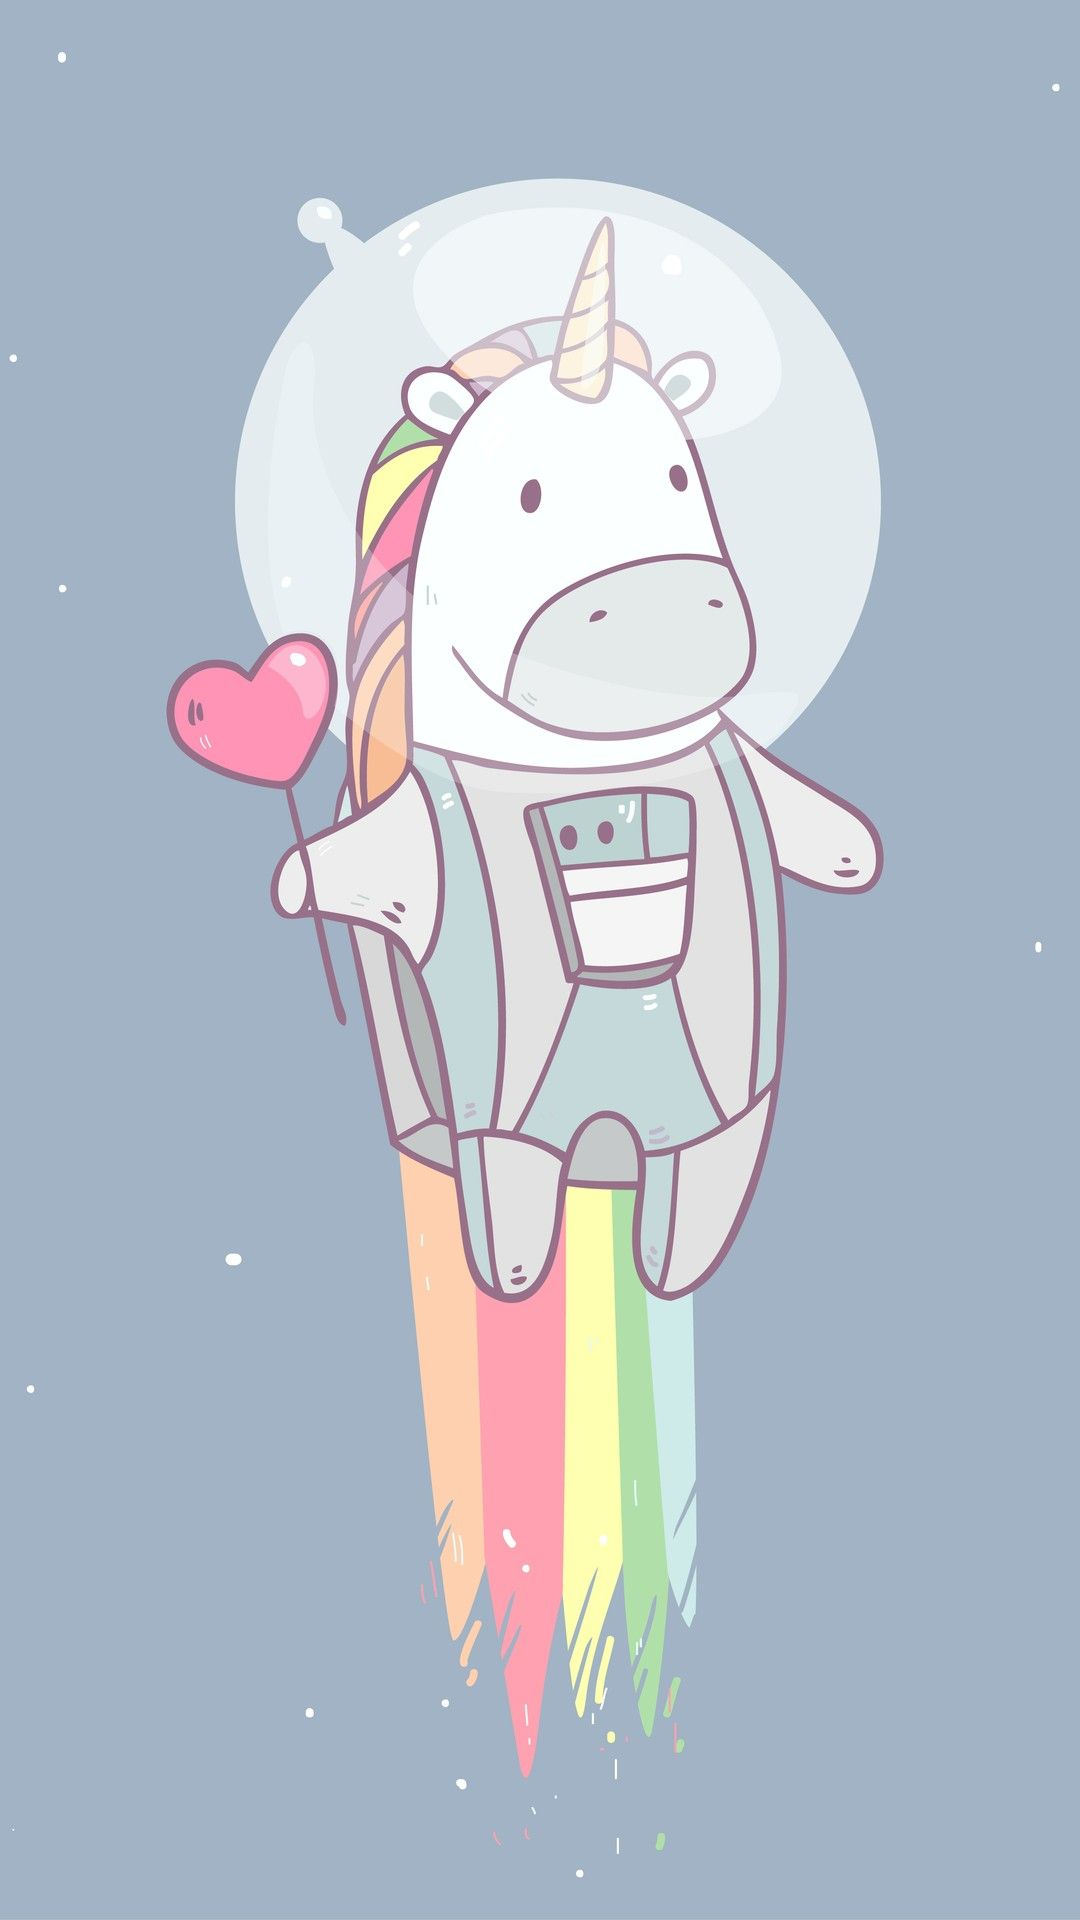 Pinterest Hannia Valastro Unicorn Wallpaper Cute Cute Cartoon Wallpapers Cute Wallpapers